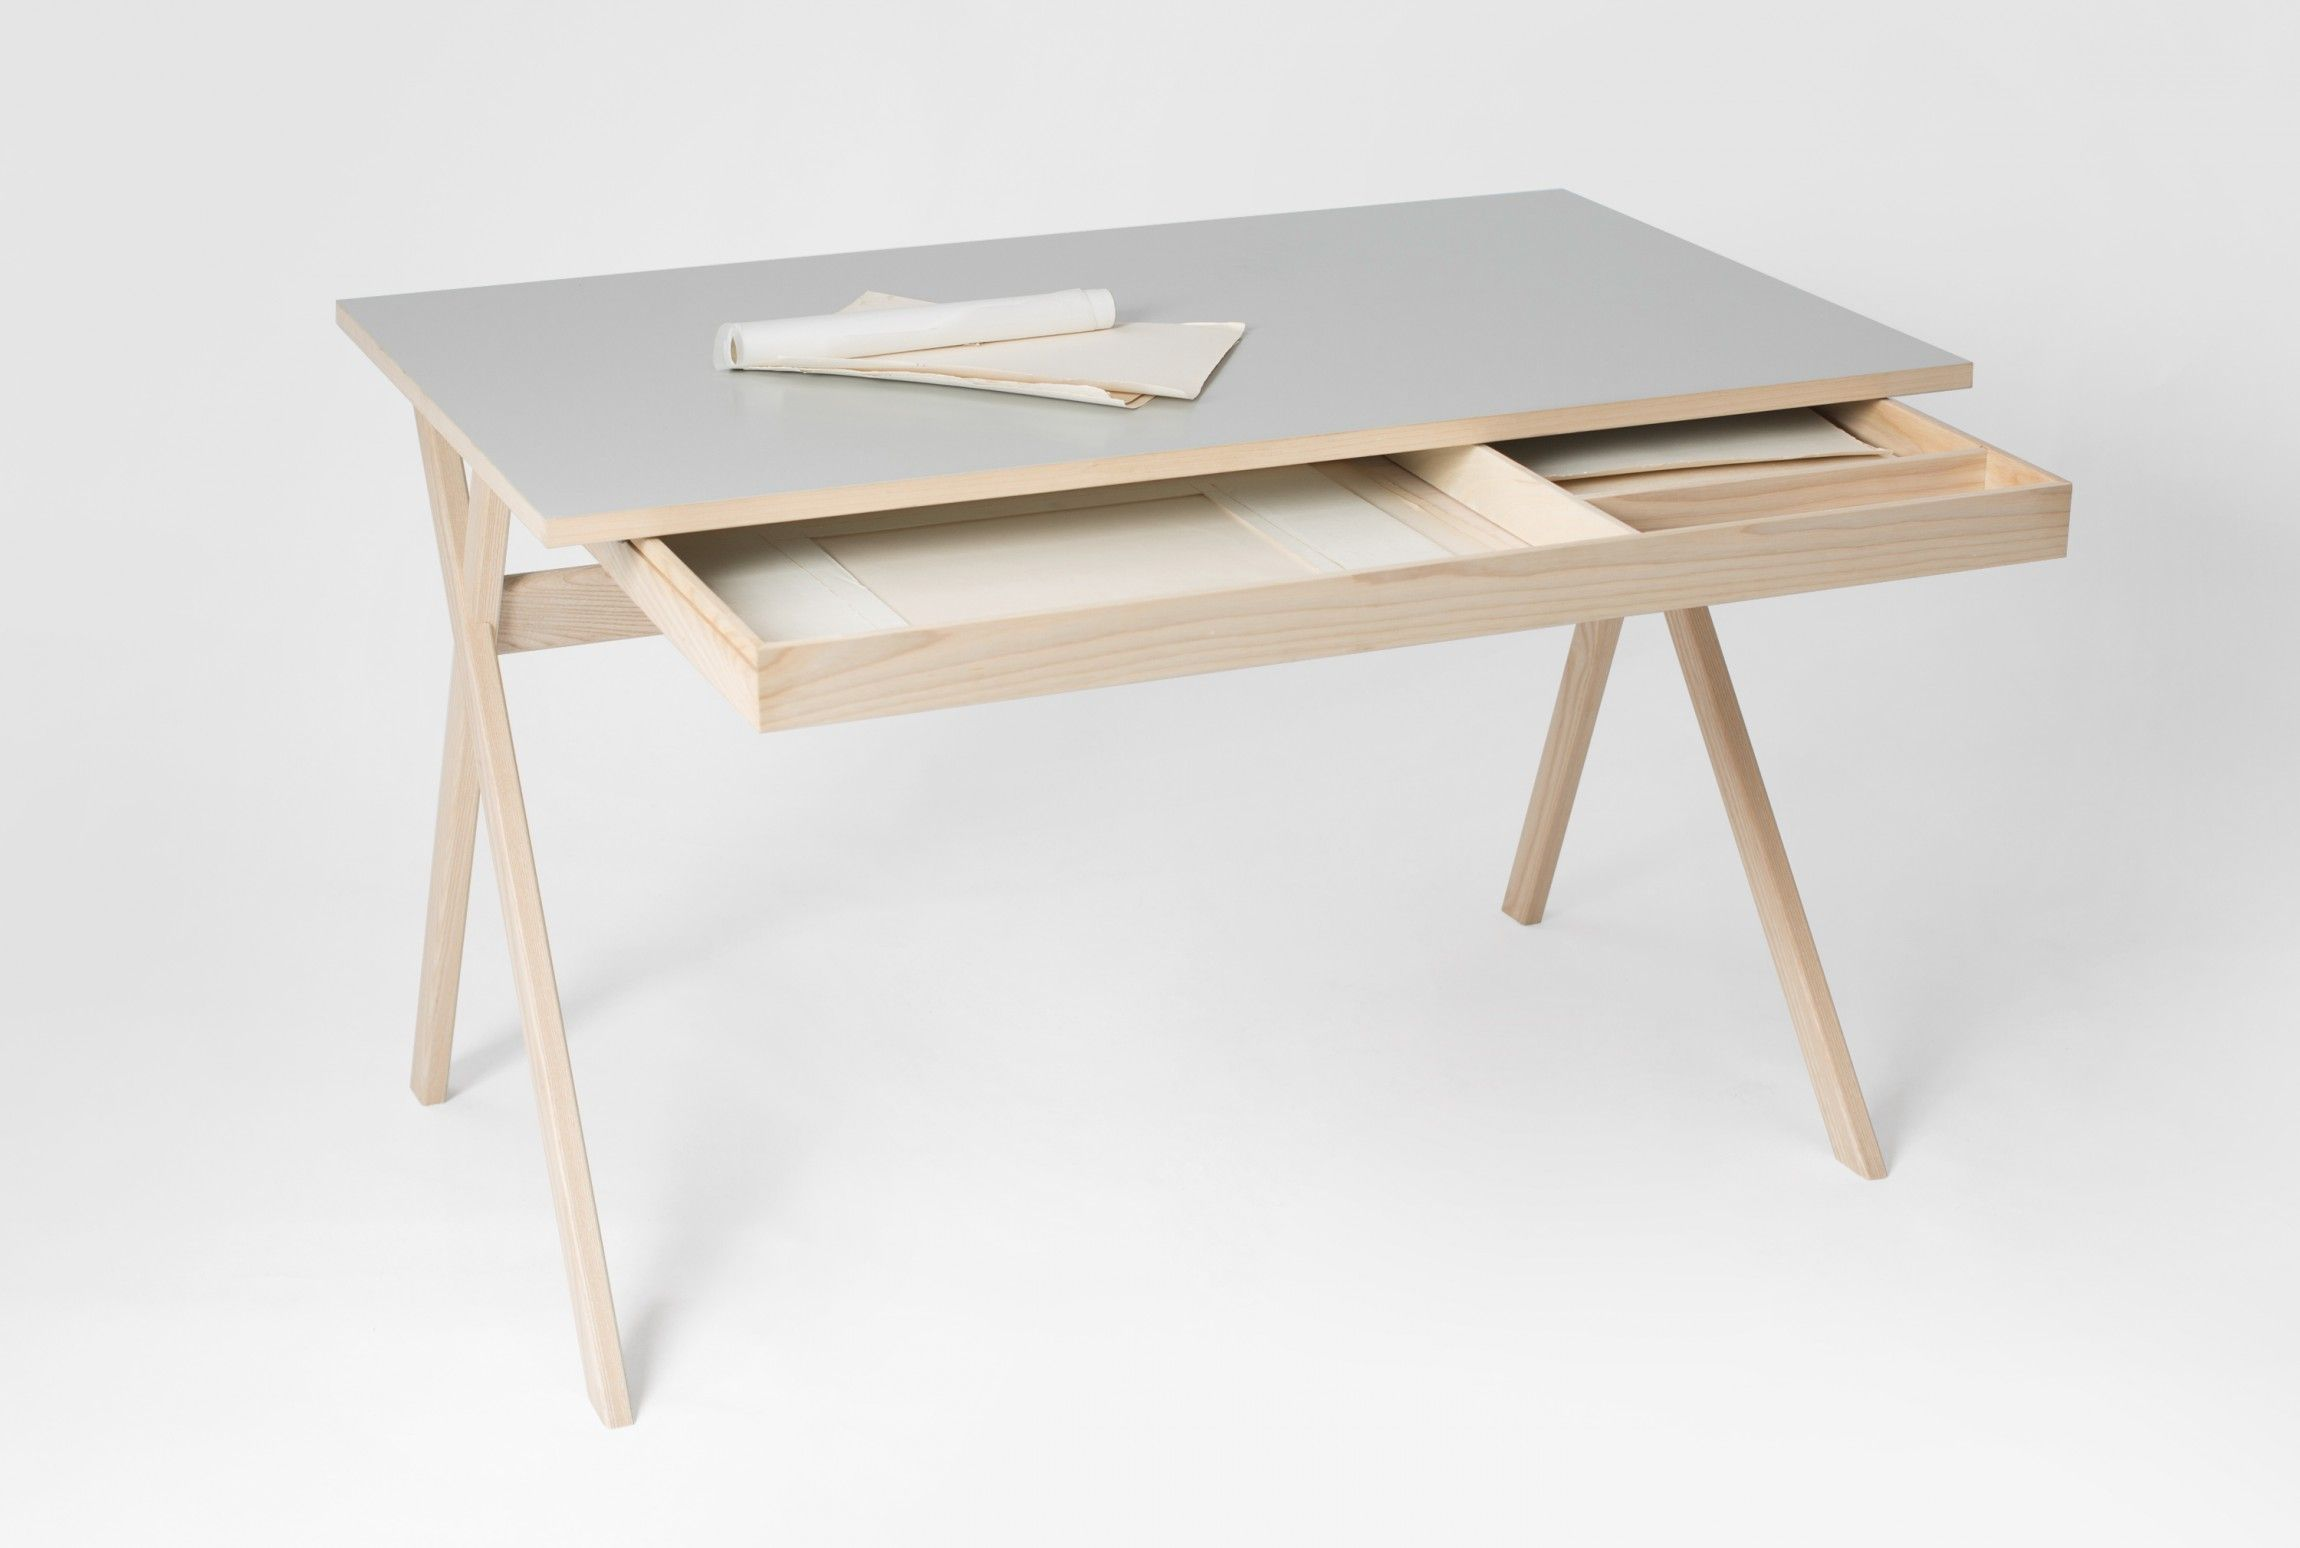 Atelier Desk Is A Minimal Desk Created By Germany Based Designers